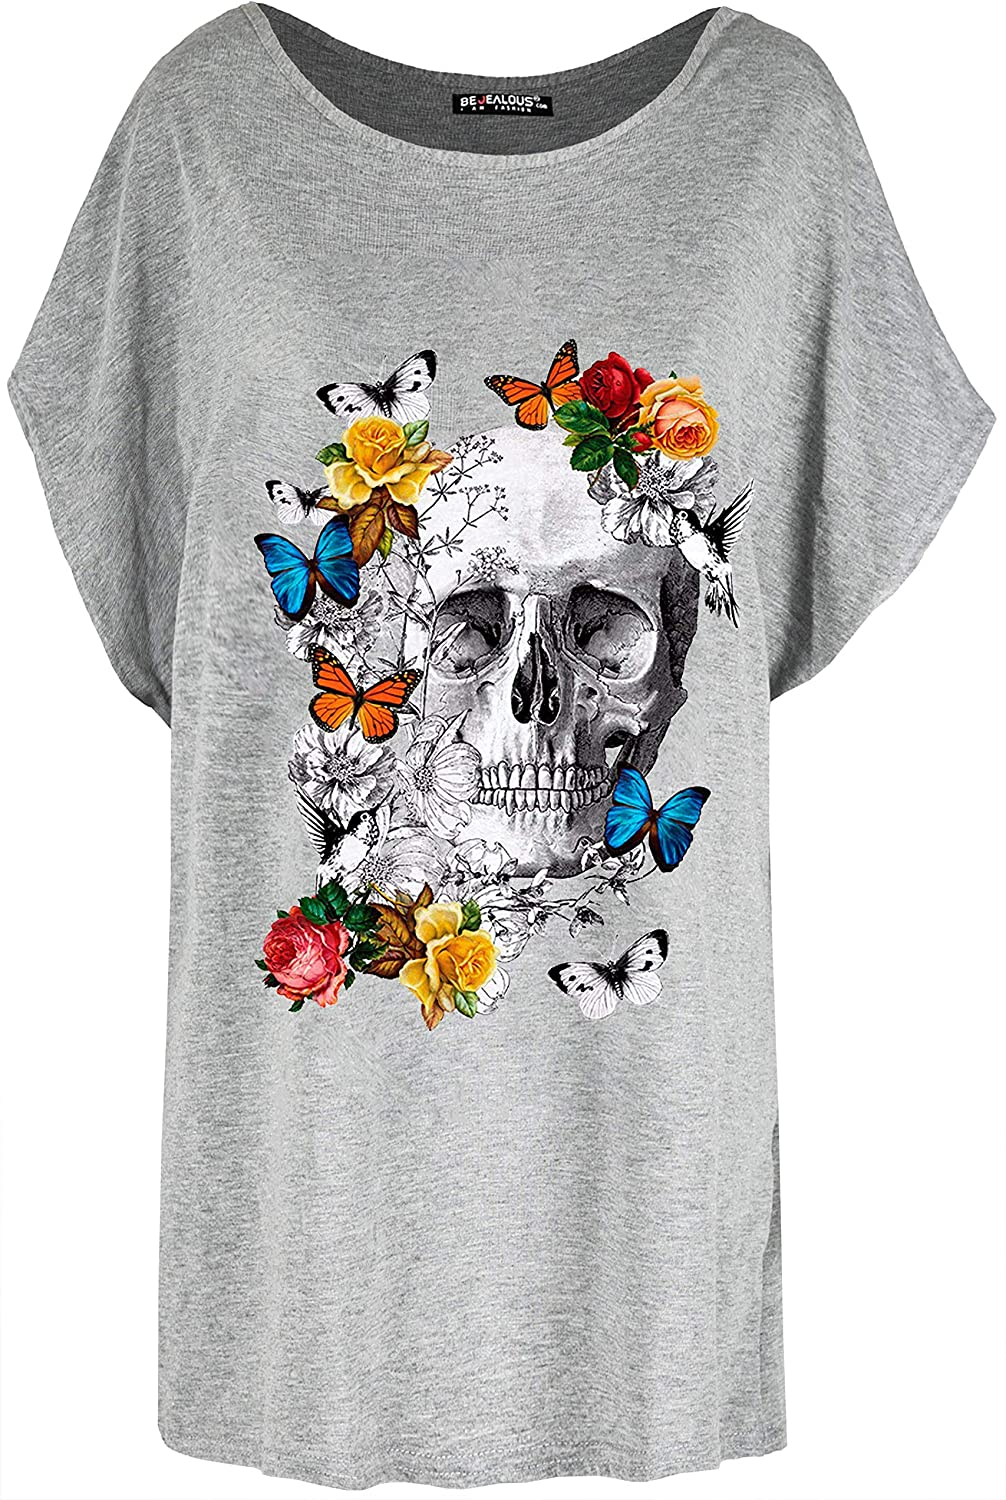 Be Jealous Womens Colourful Butterfly Floral Skull T-Shirt